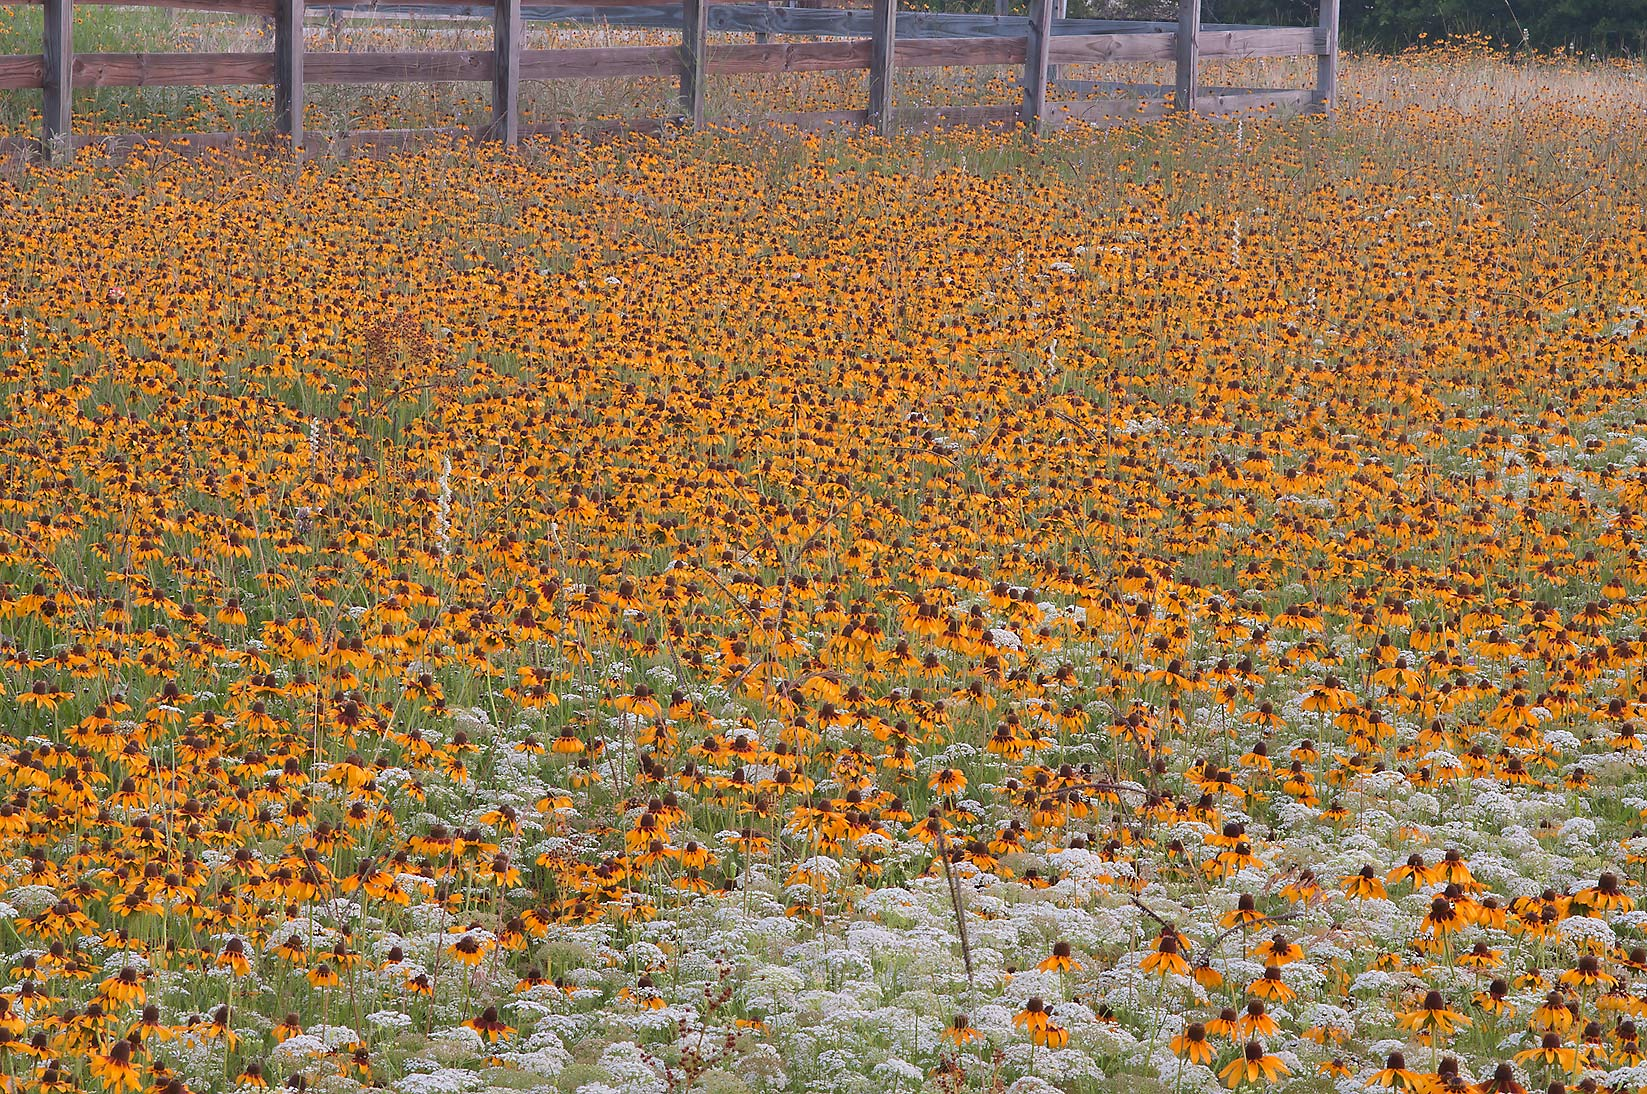 Field of black eyed susan flowers near equestrian...Creek Park. College Station, Texas